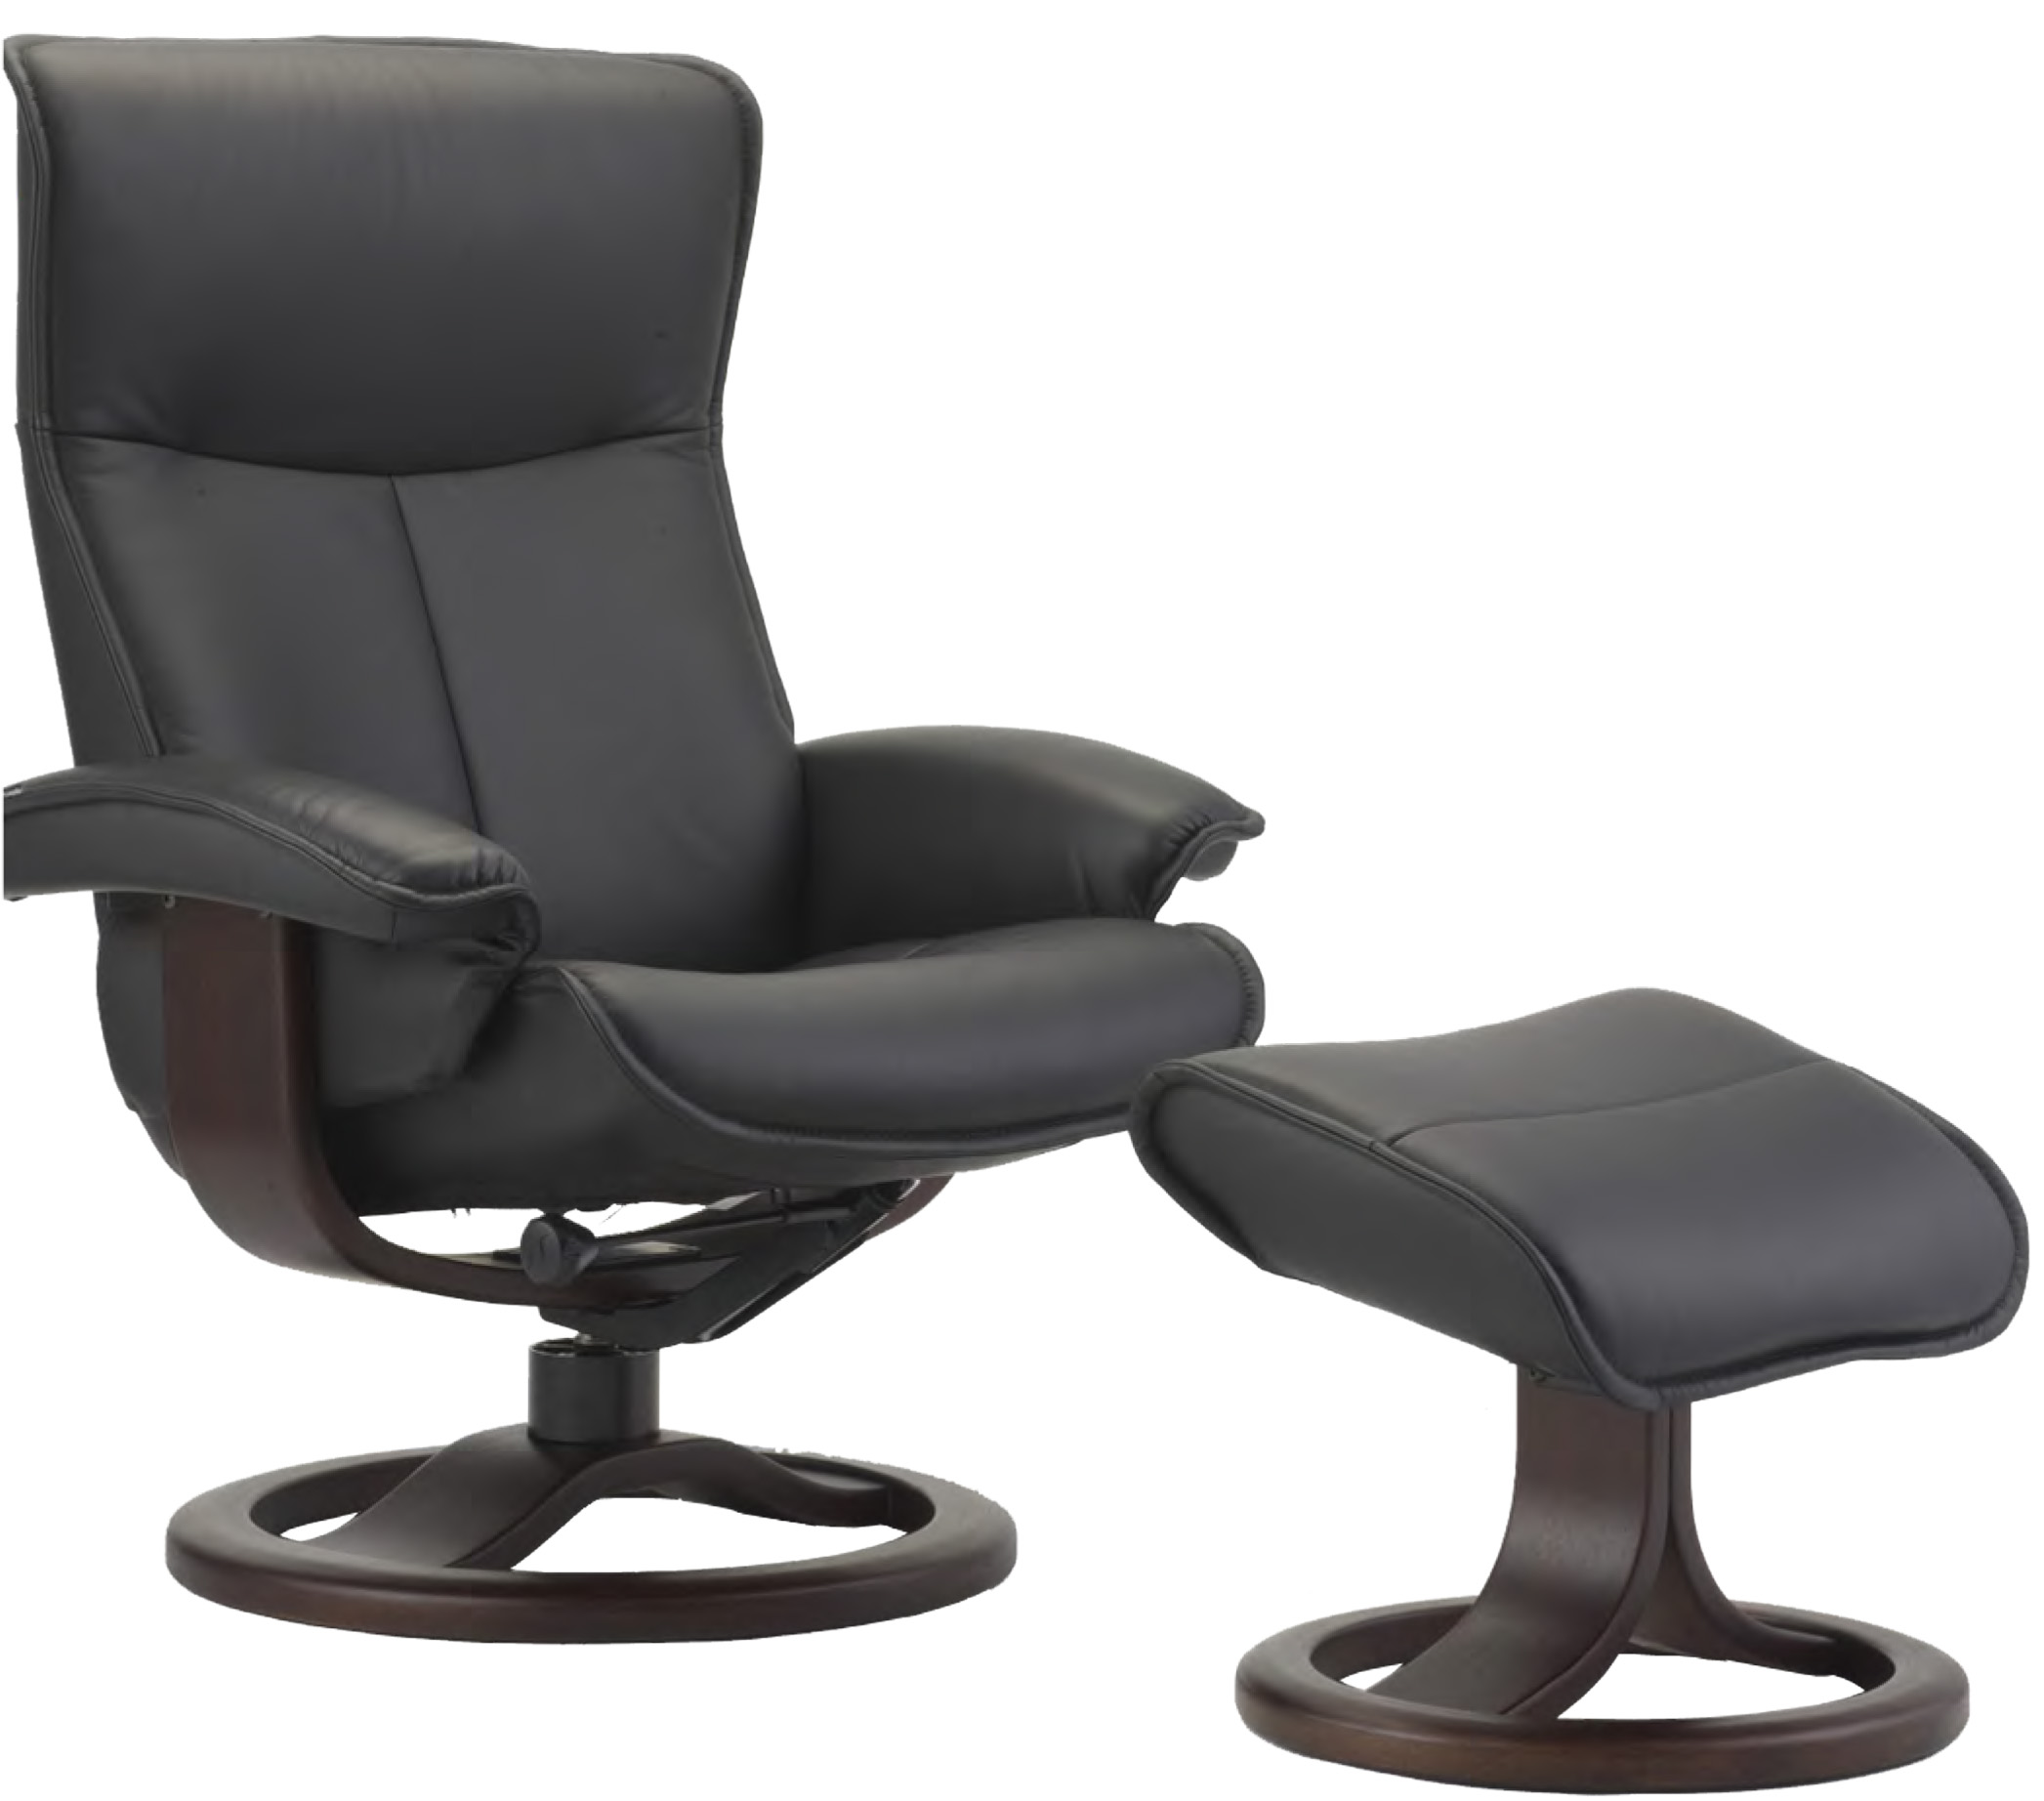 Fjords Senator Ergonomic Leather Recliner Chair and Ottoman Scandinavian  sc 1 st  Vitalityweb.com & Fjords Senator Ergonomic Leather Recliner Chair + Ottoman ... islam-shia.org